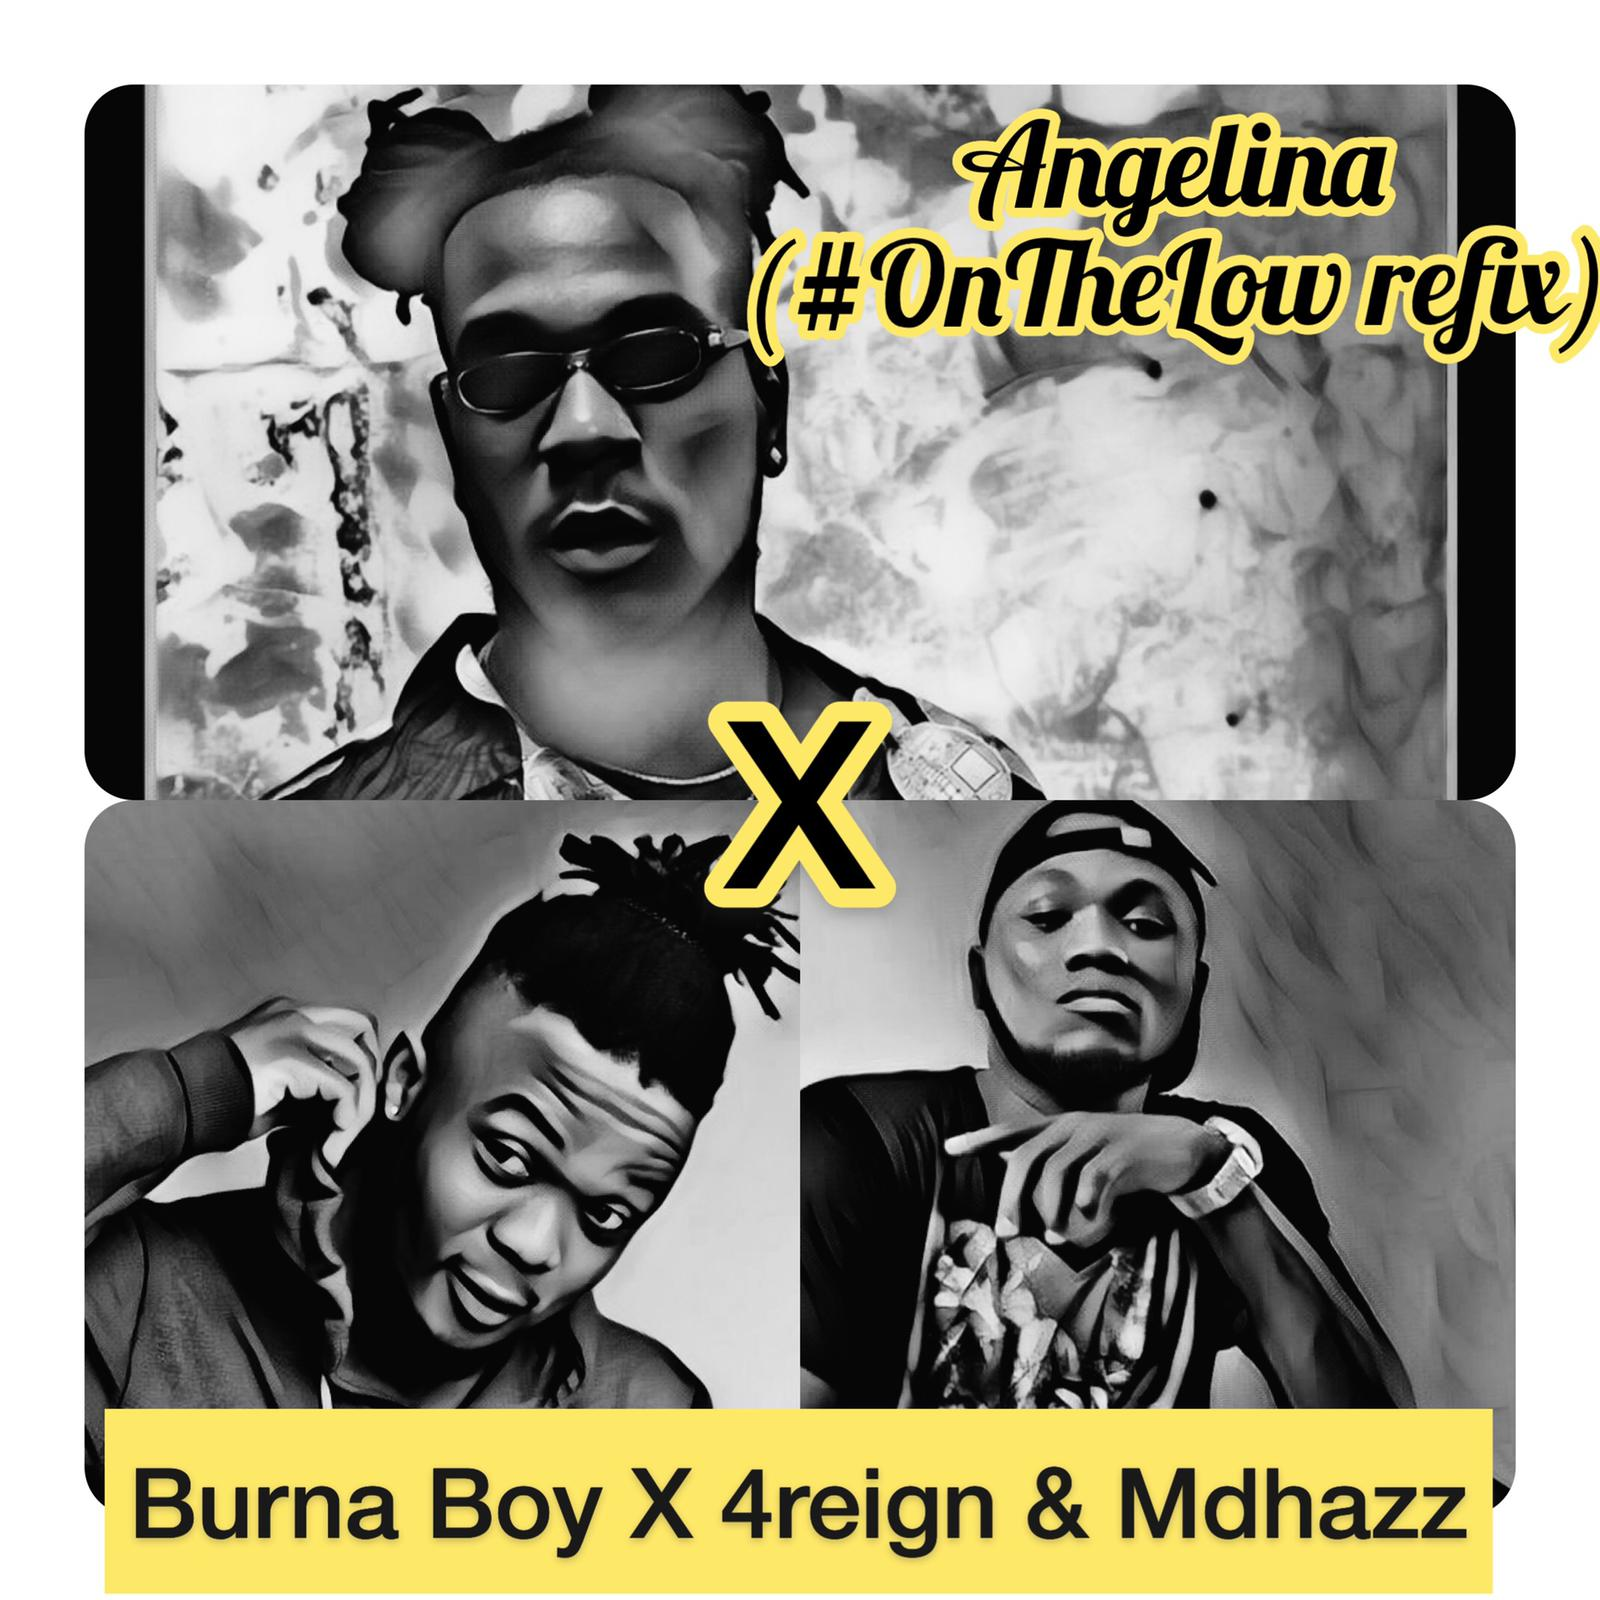 burna boy ft harmonize angelina mp3 download